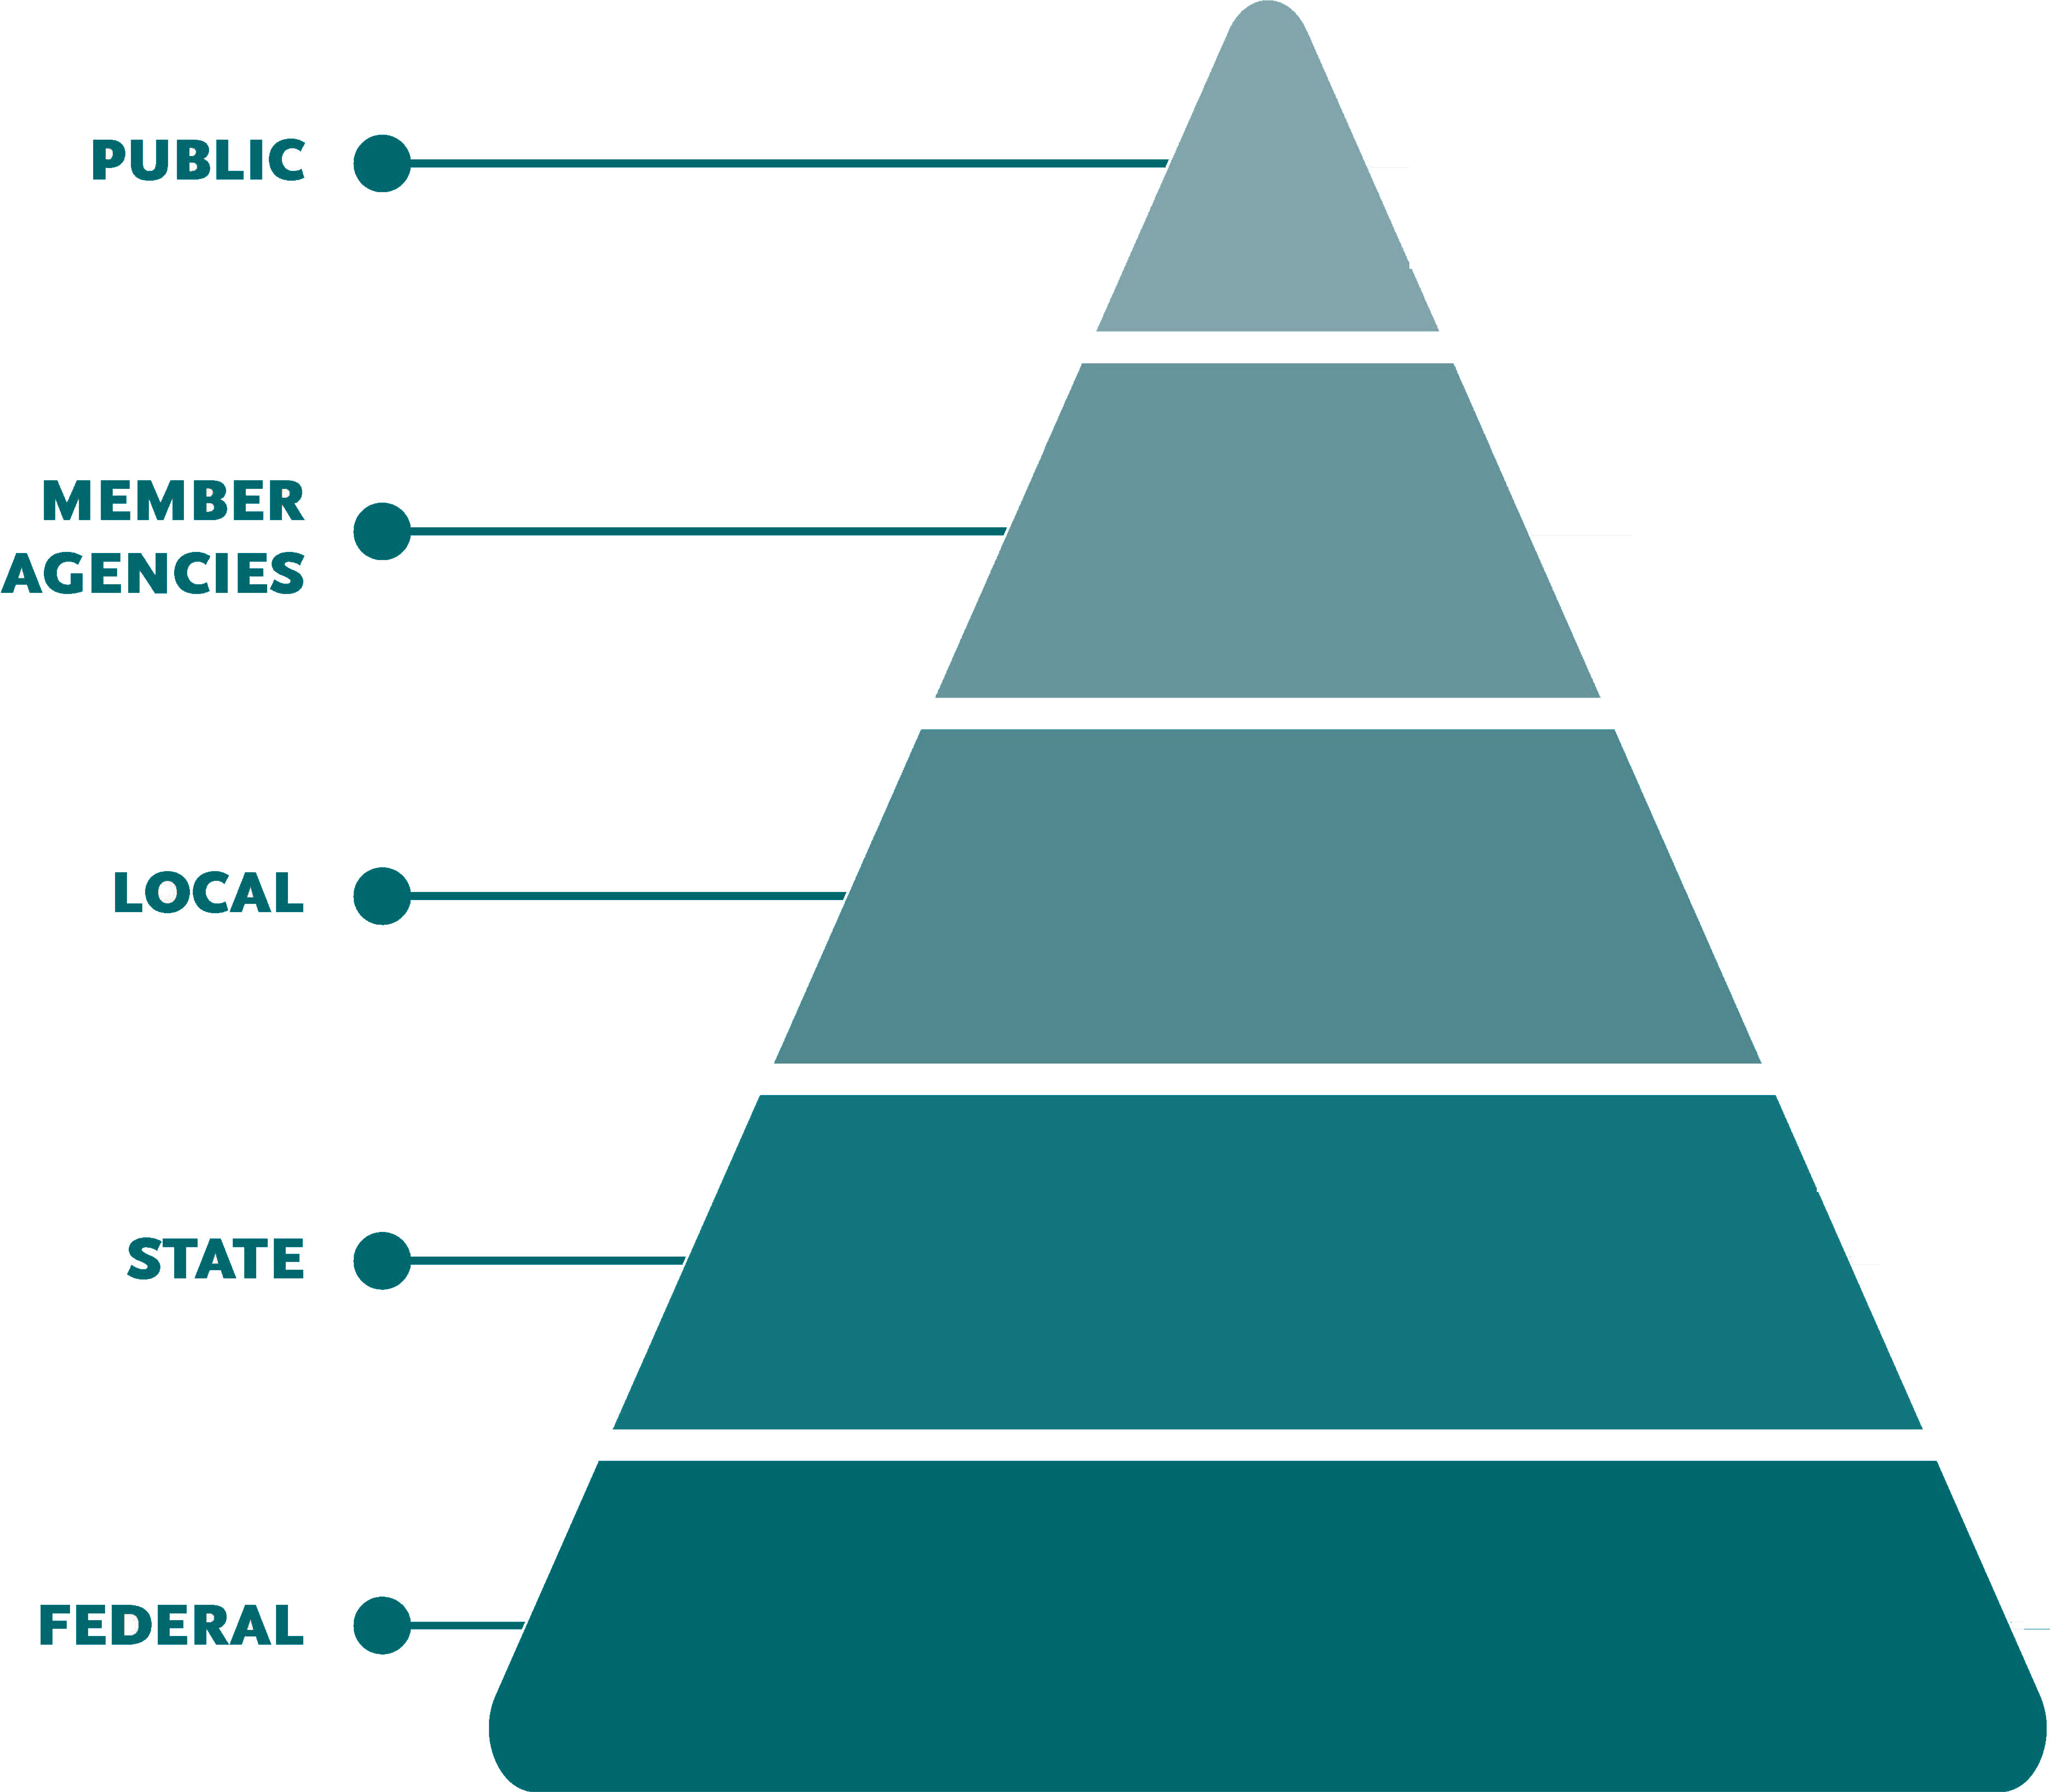 Governance pyramid showing hierarchical levels begging at the bottom with: Federal, State, Local, Member Agencies, and the Public at the top